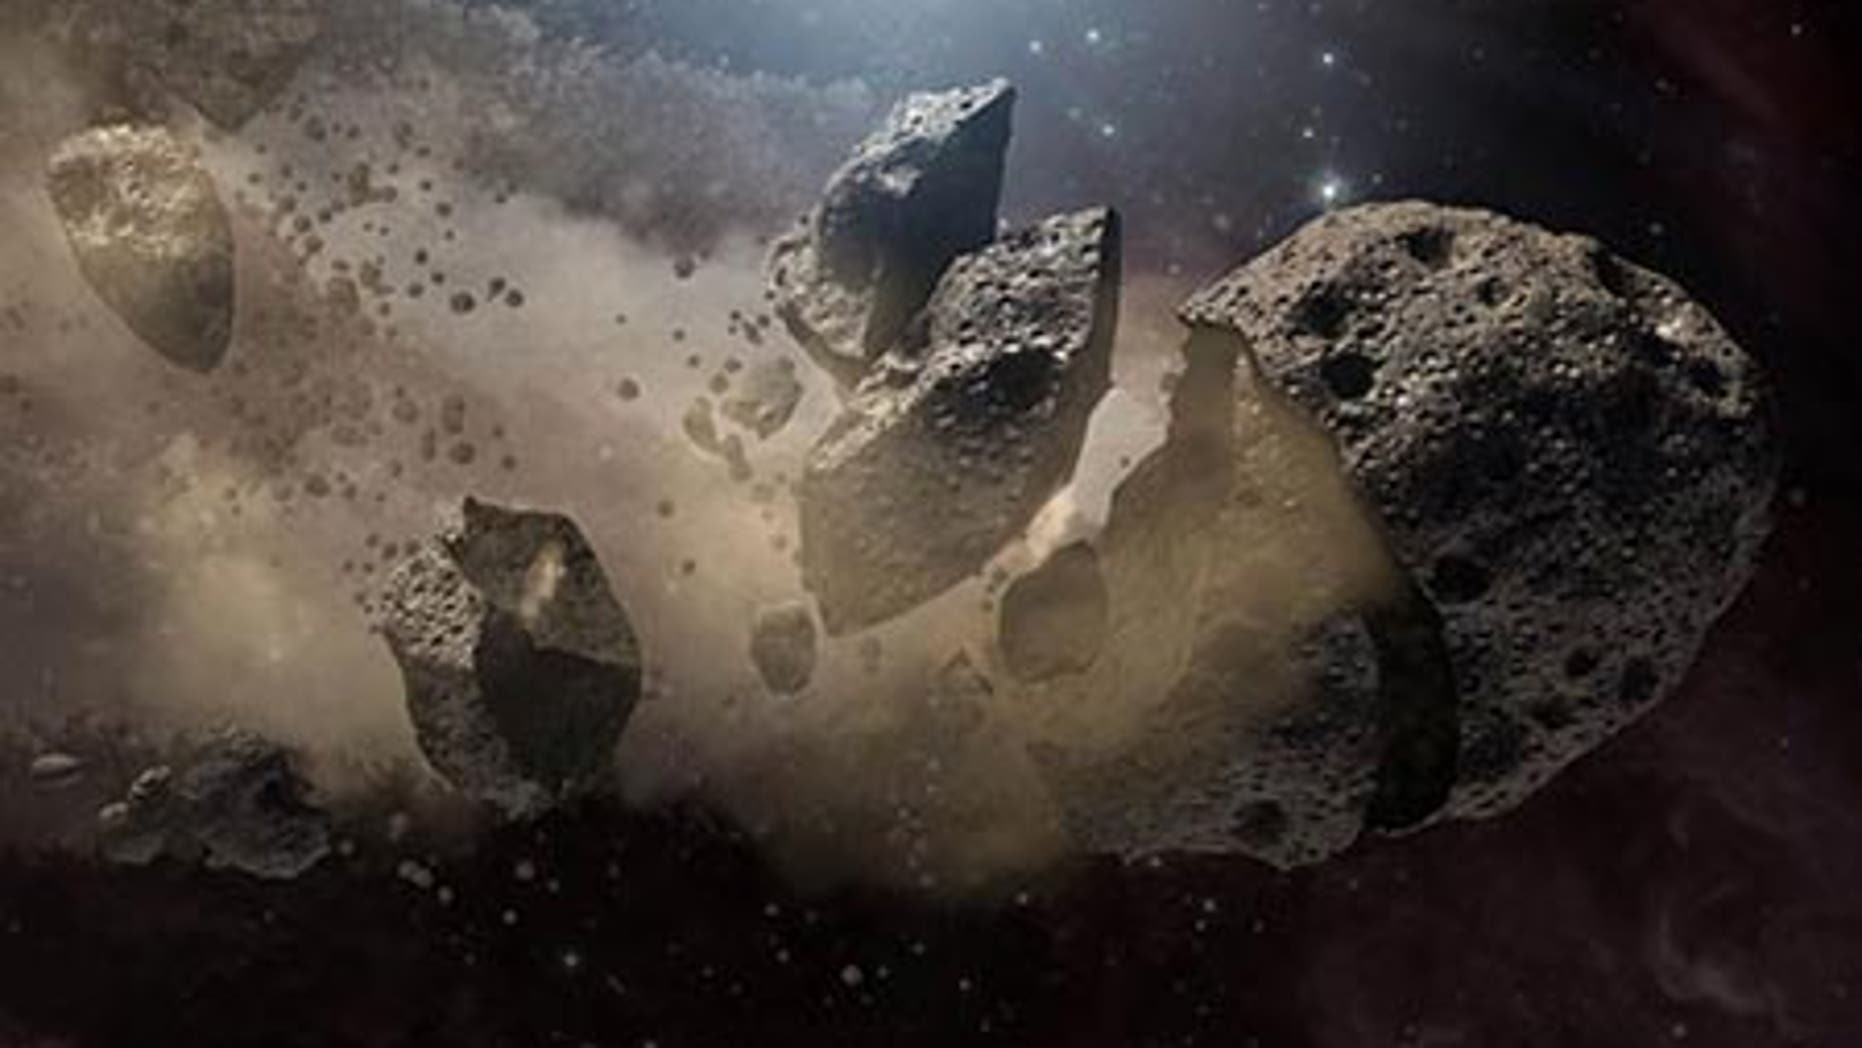 NASA's Spitzer Space Telescope set its infrared eyes upon the dusty remains of shredded asteroids around several dead stars.